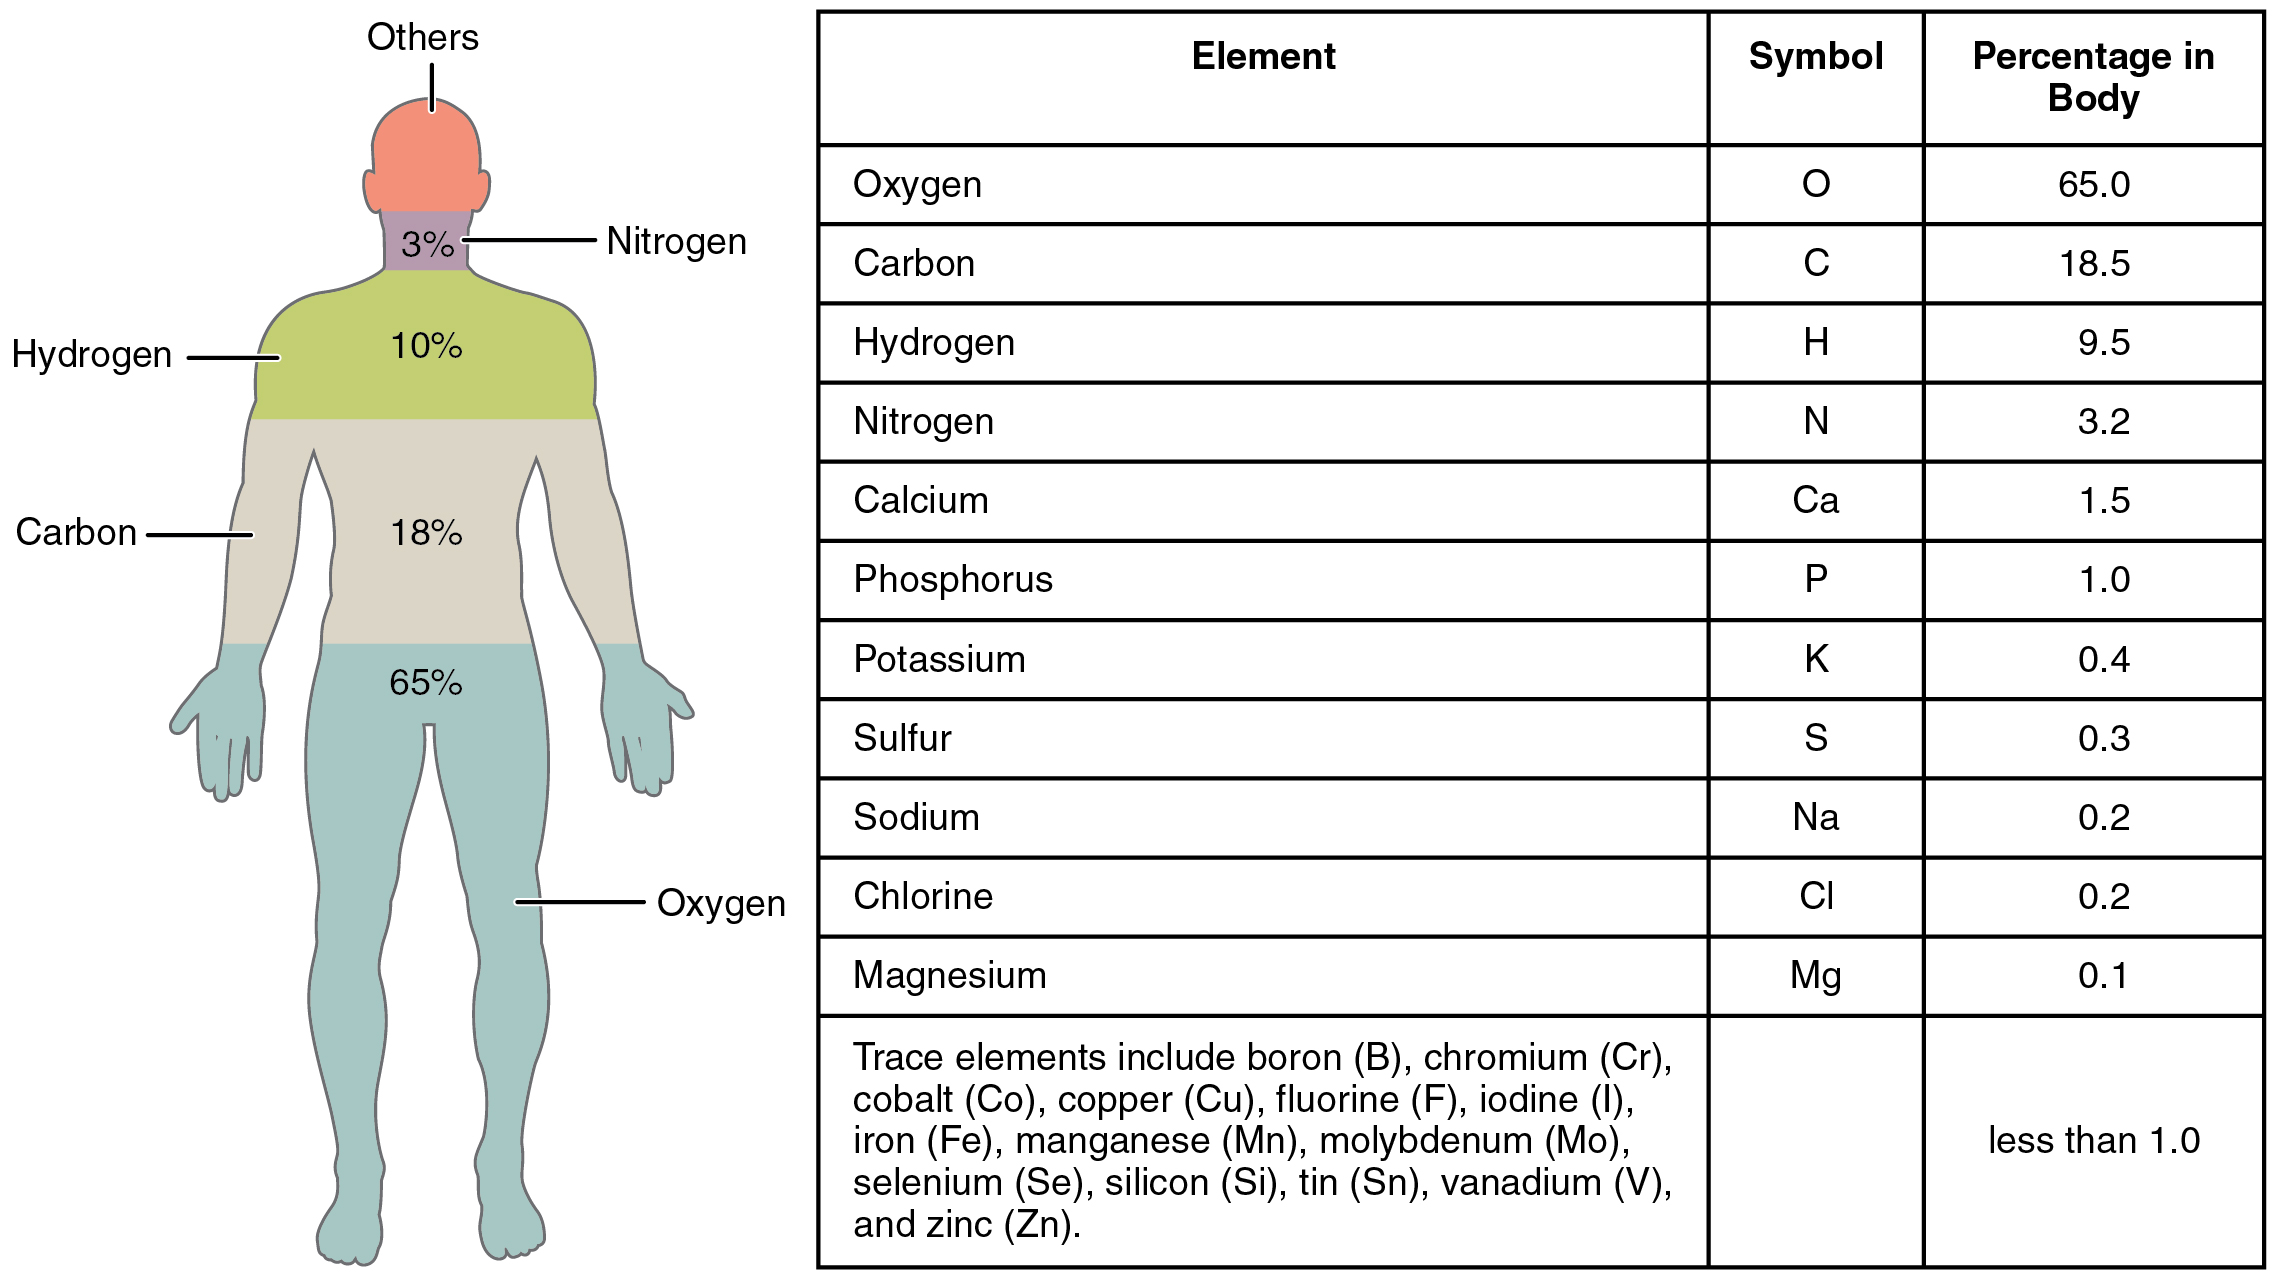 This figure shows a human body with the percentage of the main elements in the body, in the left panel. In the right panel, a table lists the elements and the percentages in the body.